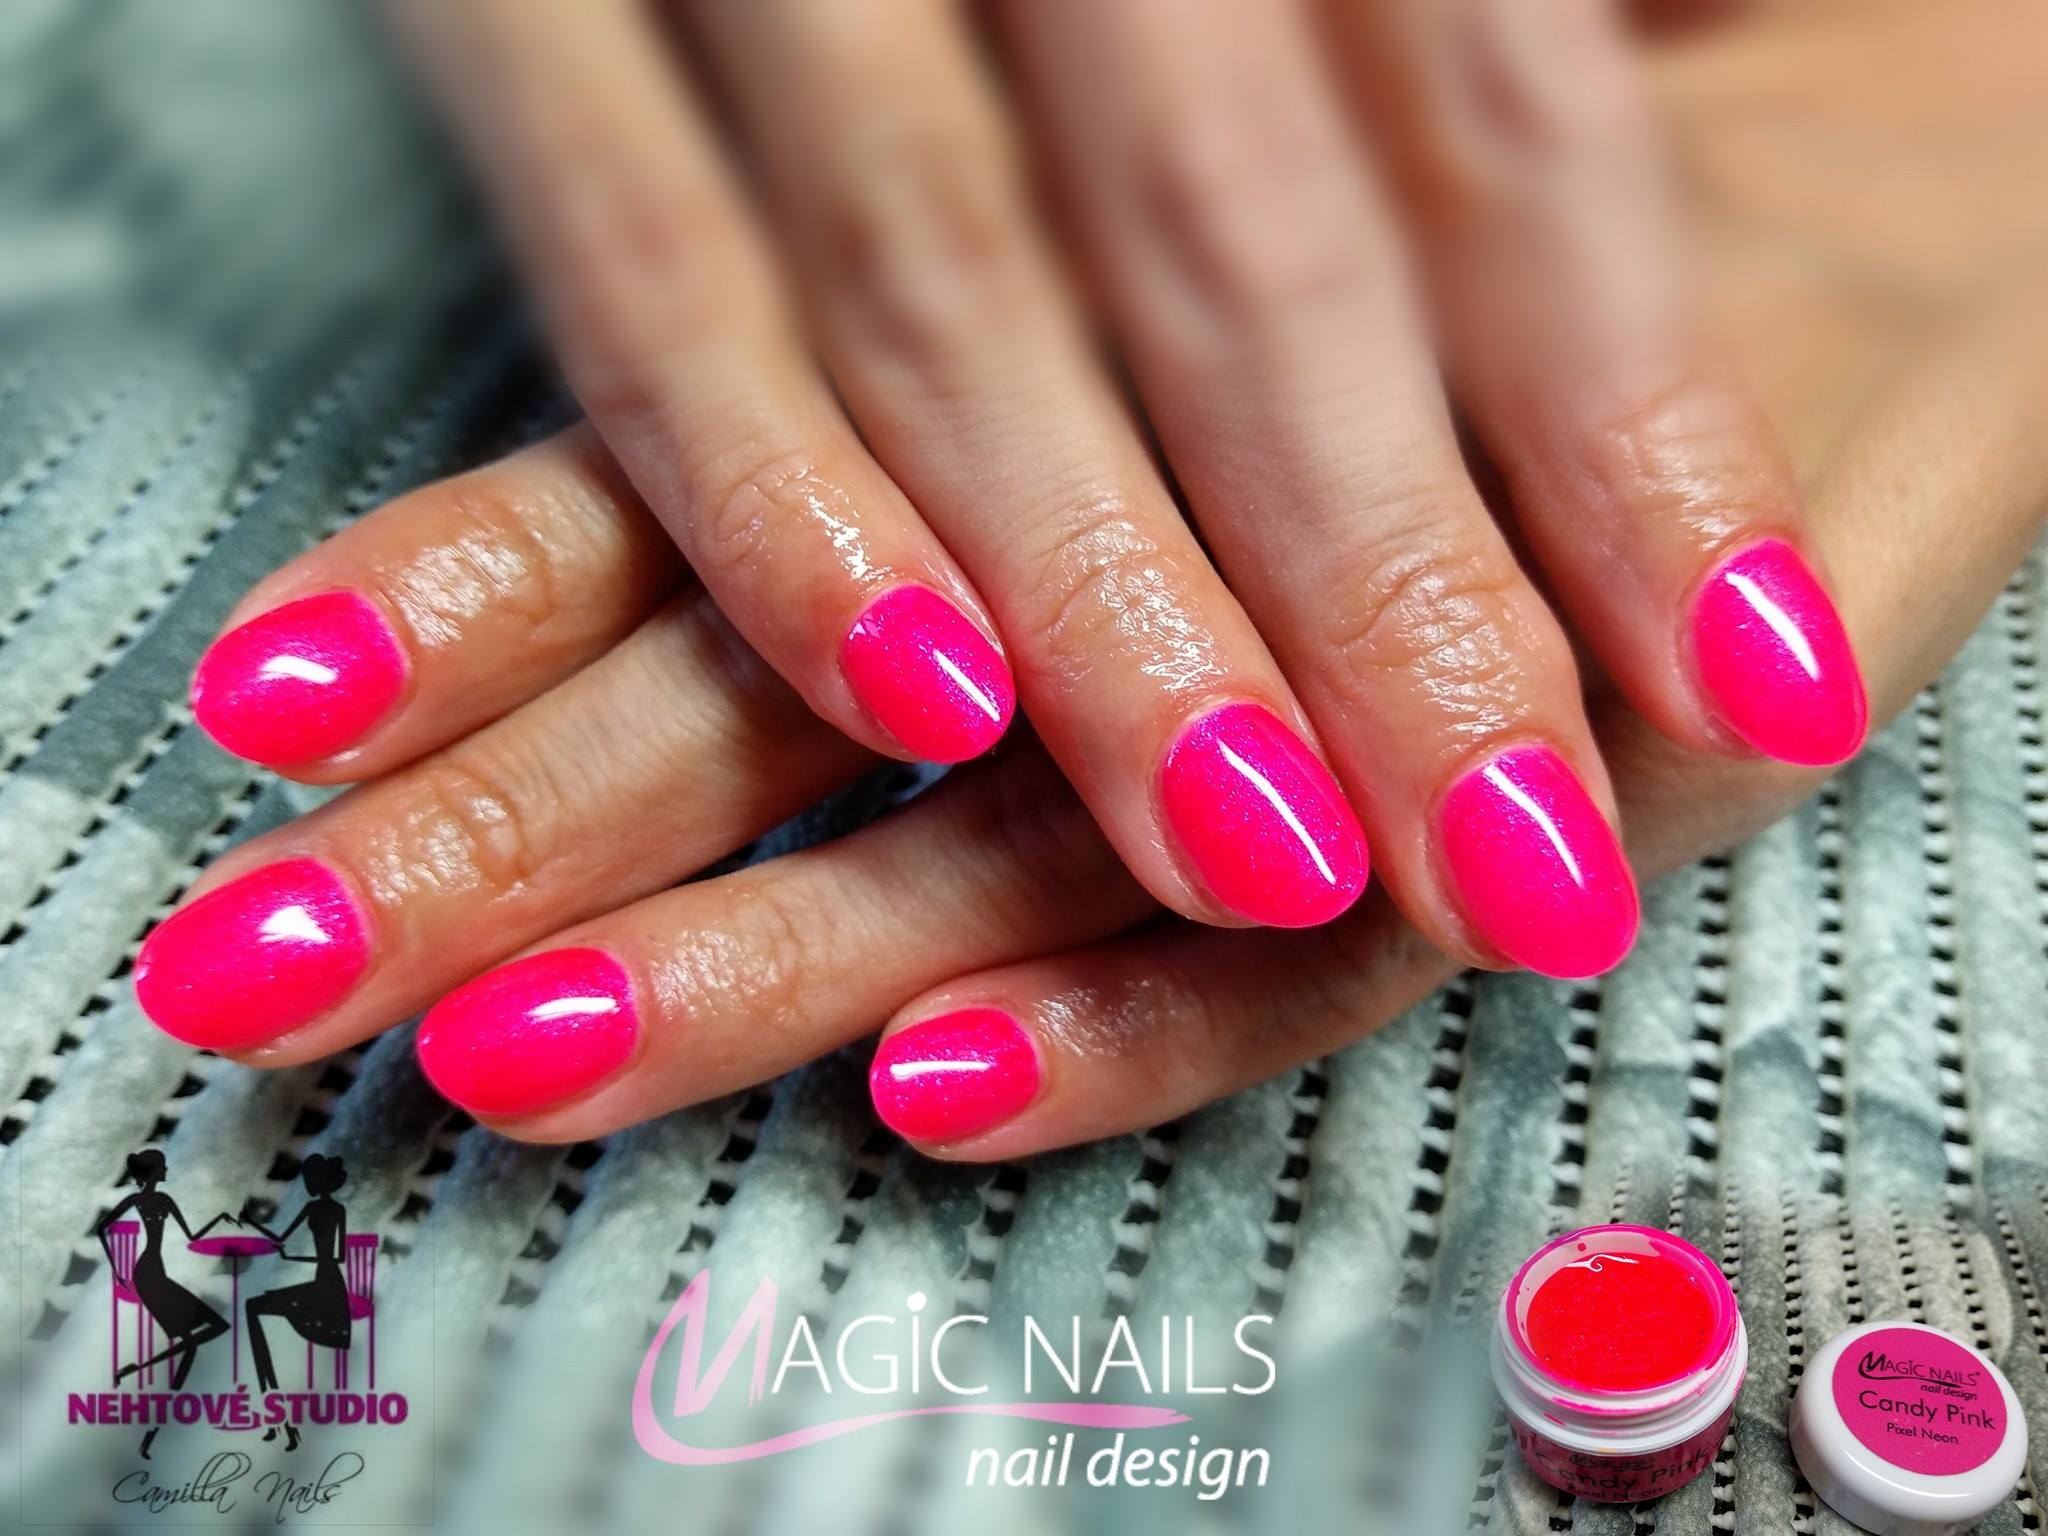 Uv Gely Neon Pixel Candy Pink Magic Nails Gelove Nehty